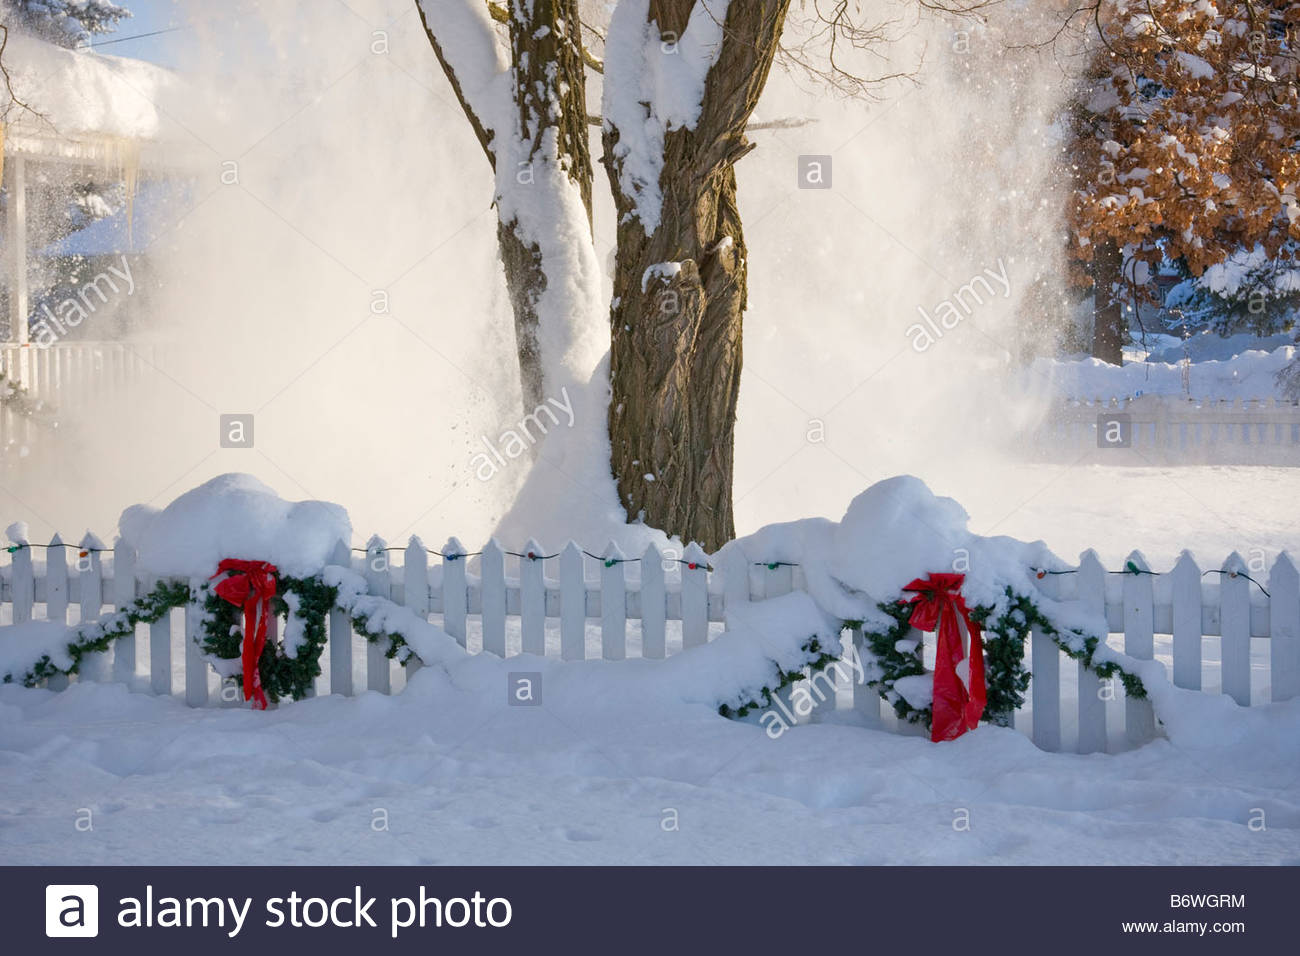 Christmas Wreaths Decorate A White Picket Fence As Snow